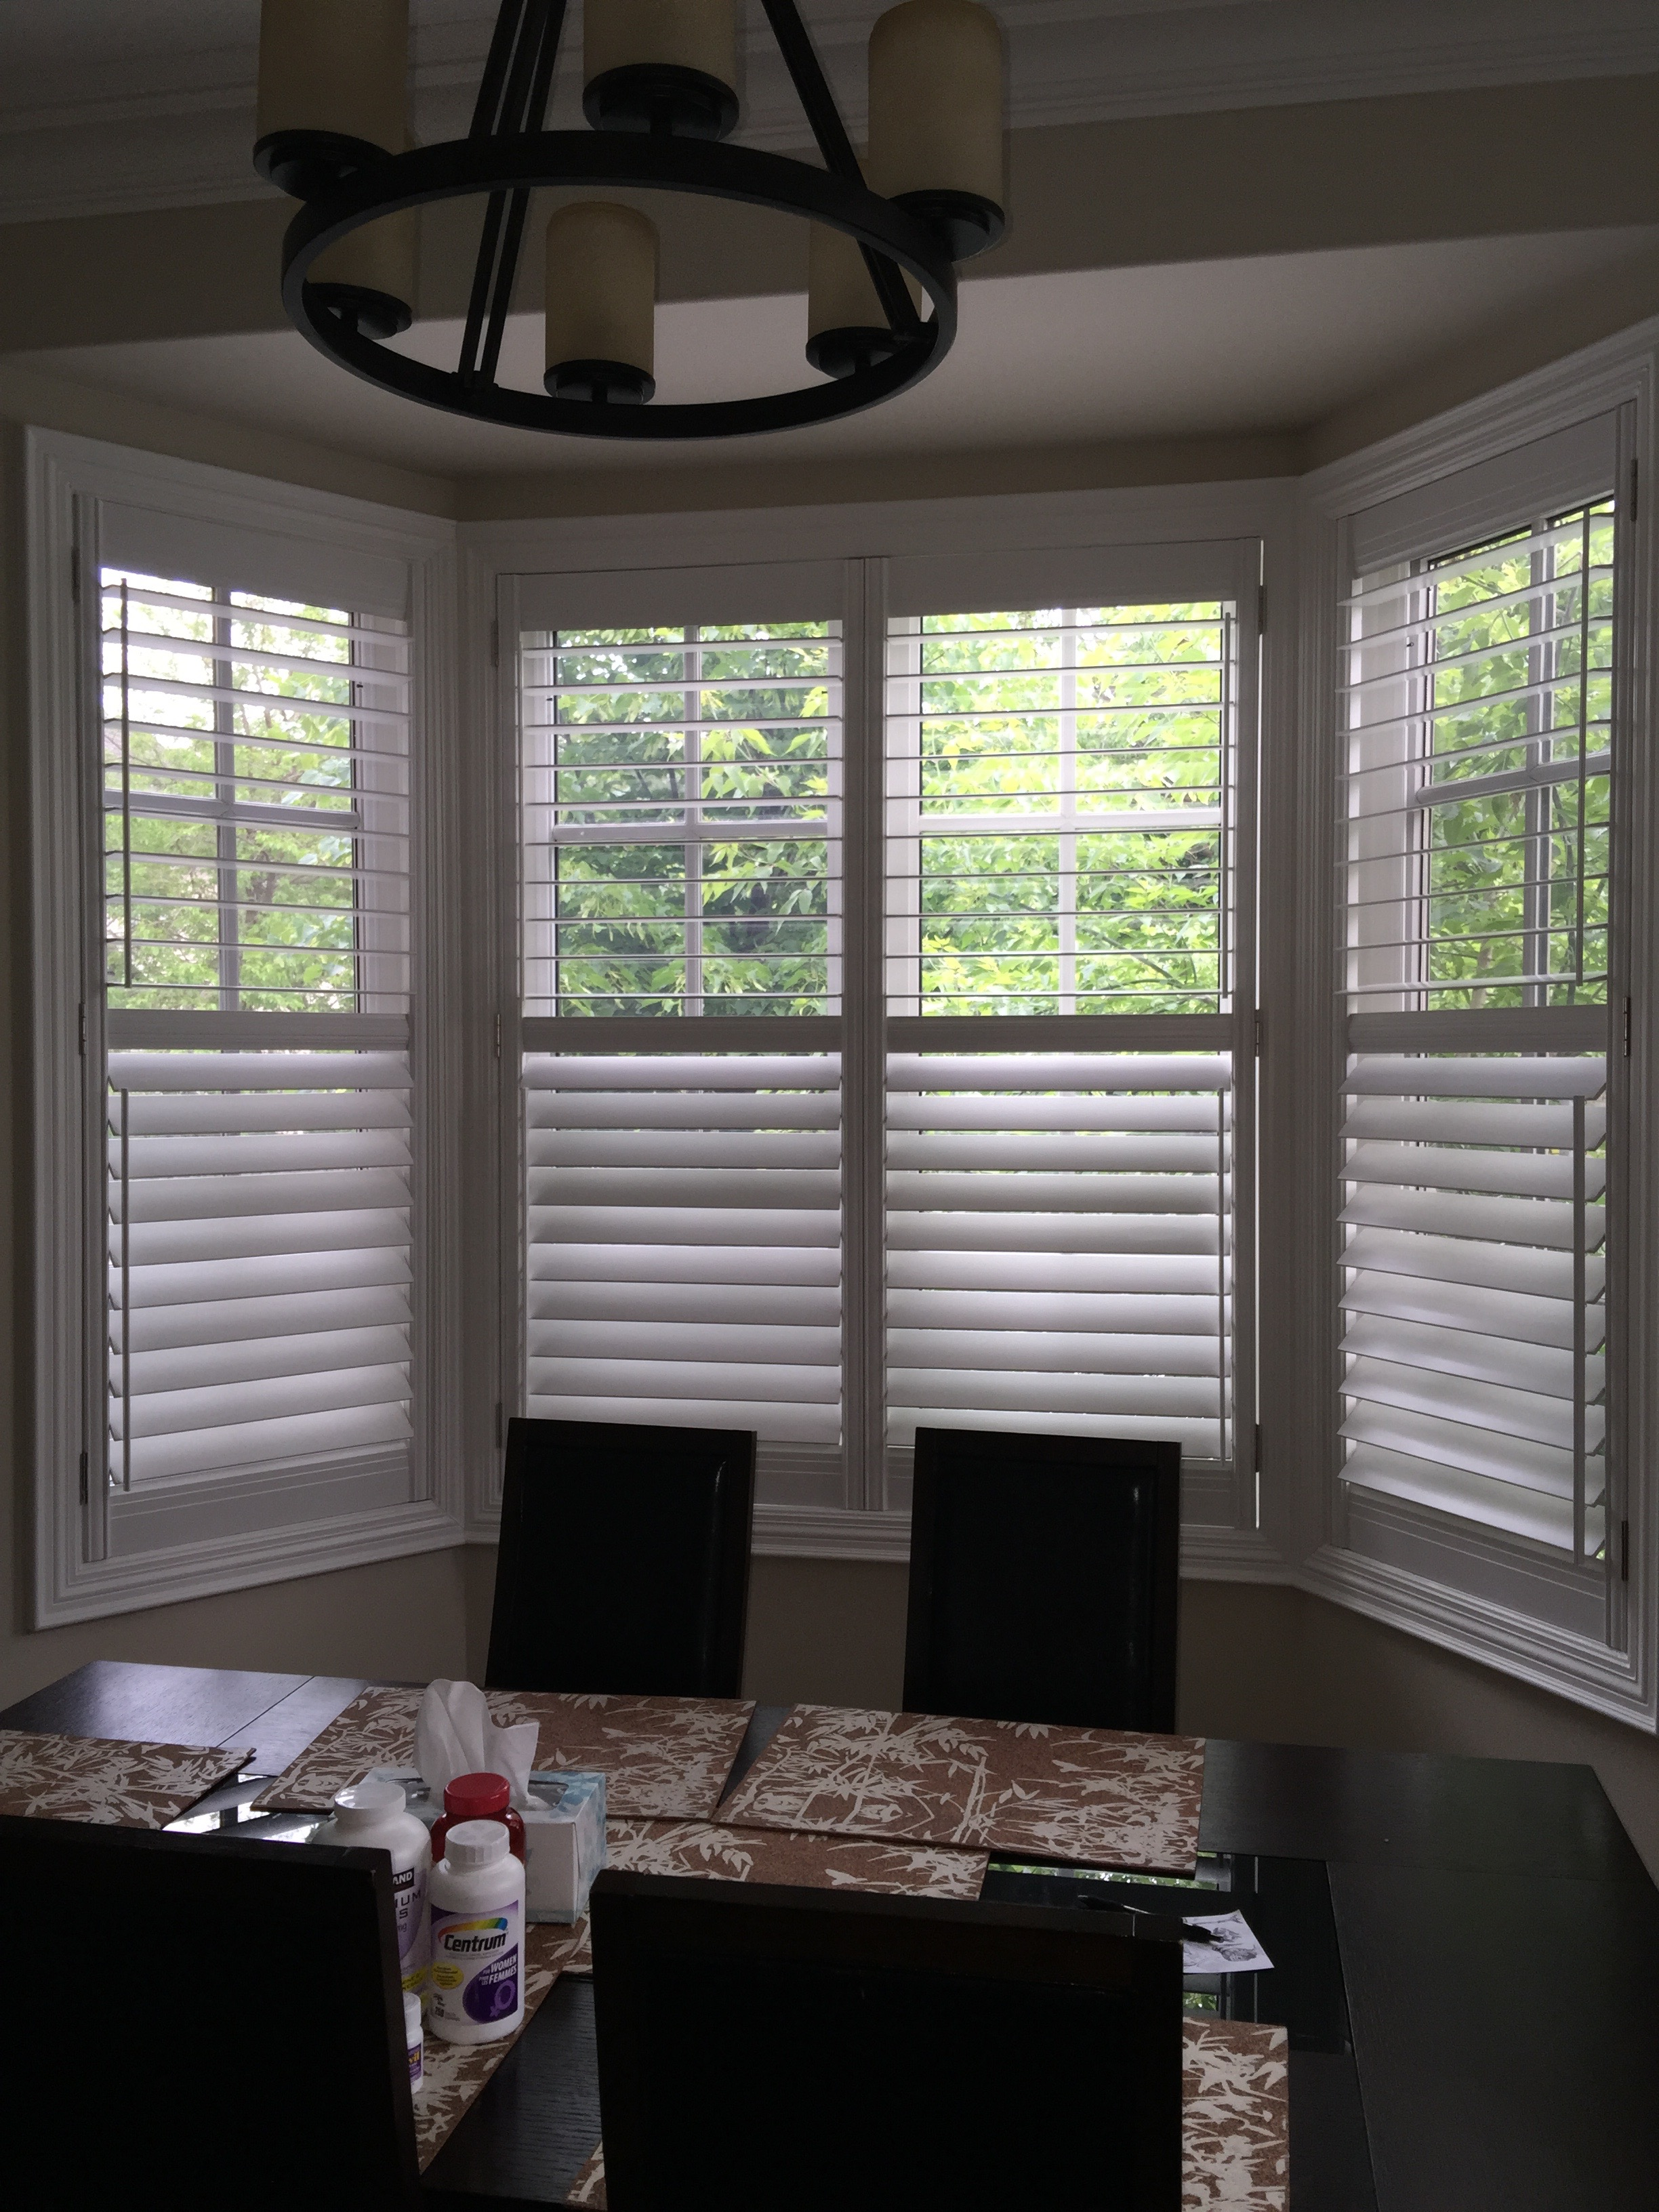 stylish window shutters for window treatment ideas